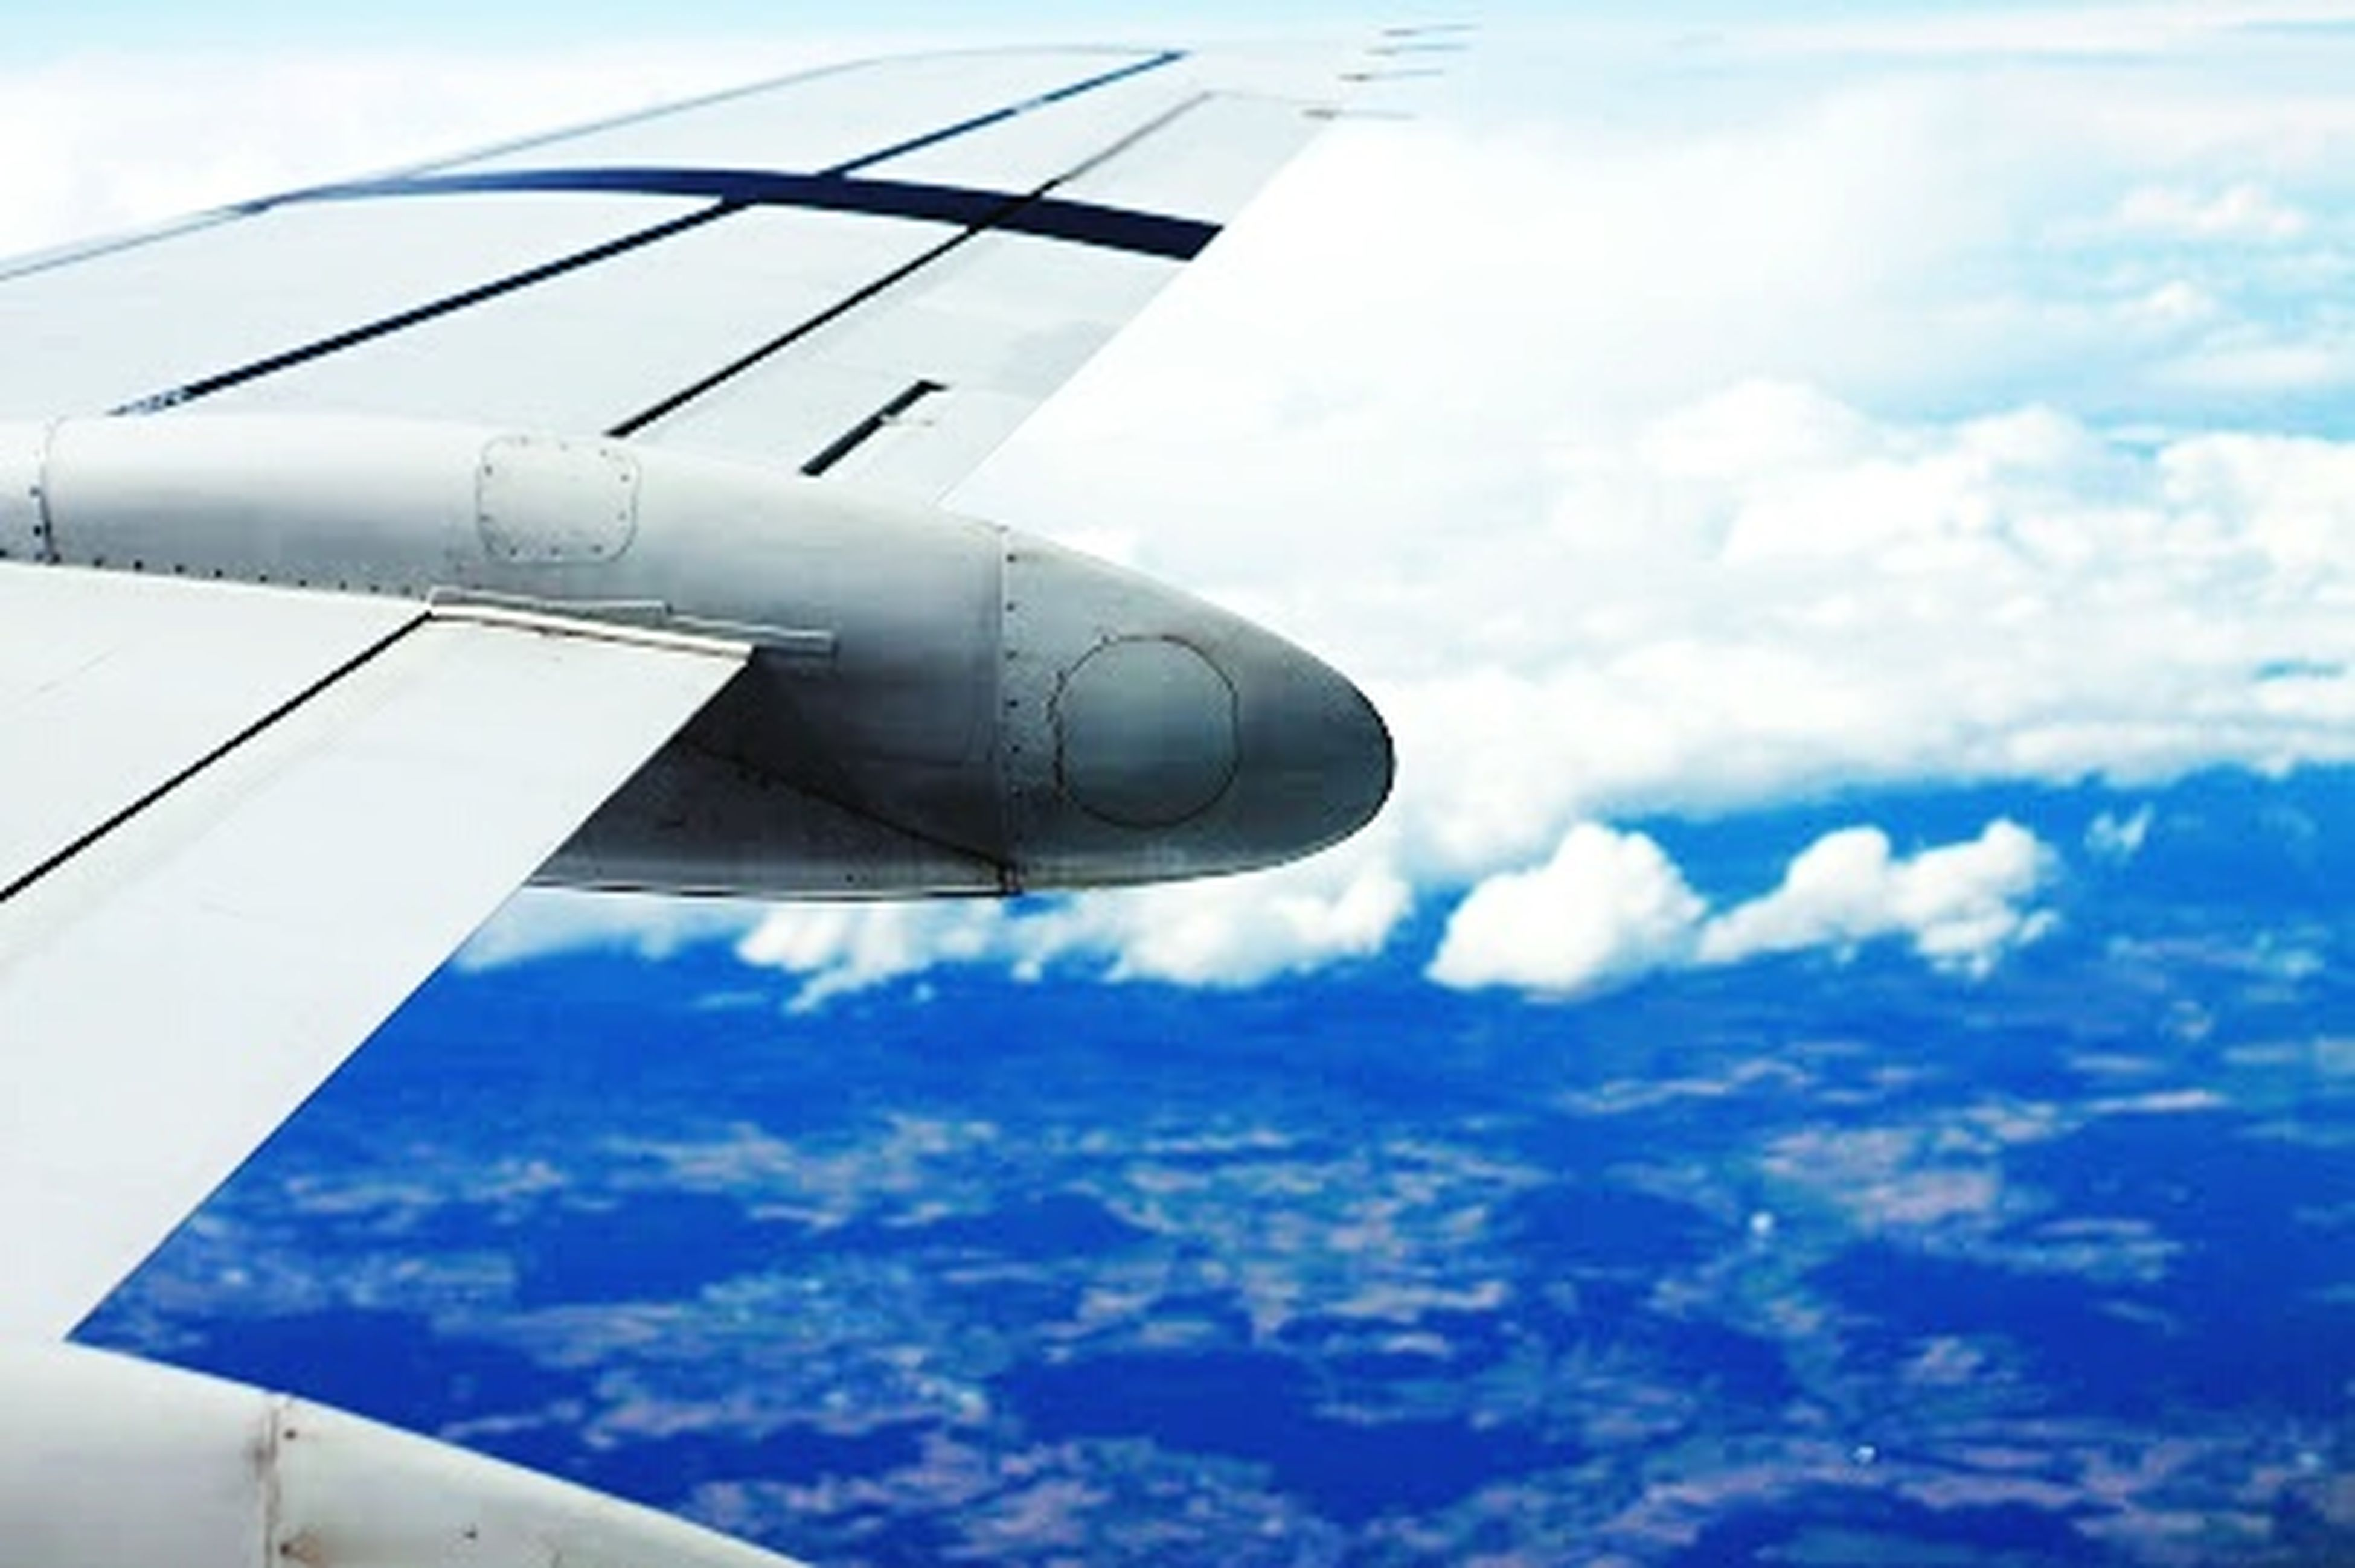 airplane, air vehicle, flying, transportation, mode of transport, aircraft wing, sky, mid-air, part of, cloud - sky, cropped, journey, travel, public transportation, aircraft, cloud, on the move, aeroplane, commercial airplane, aerial view